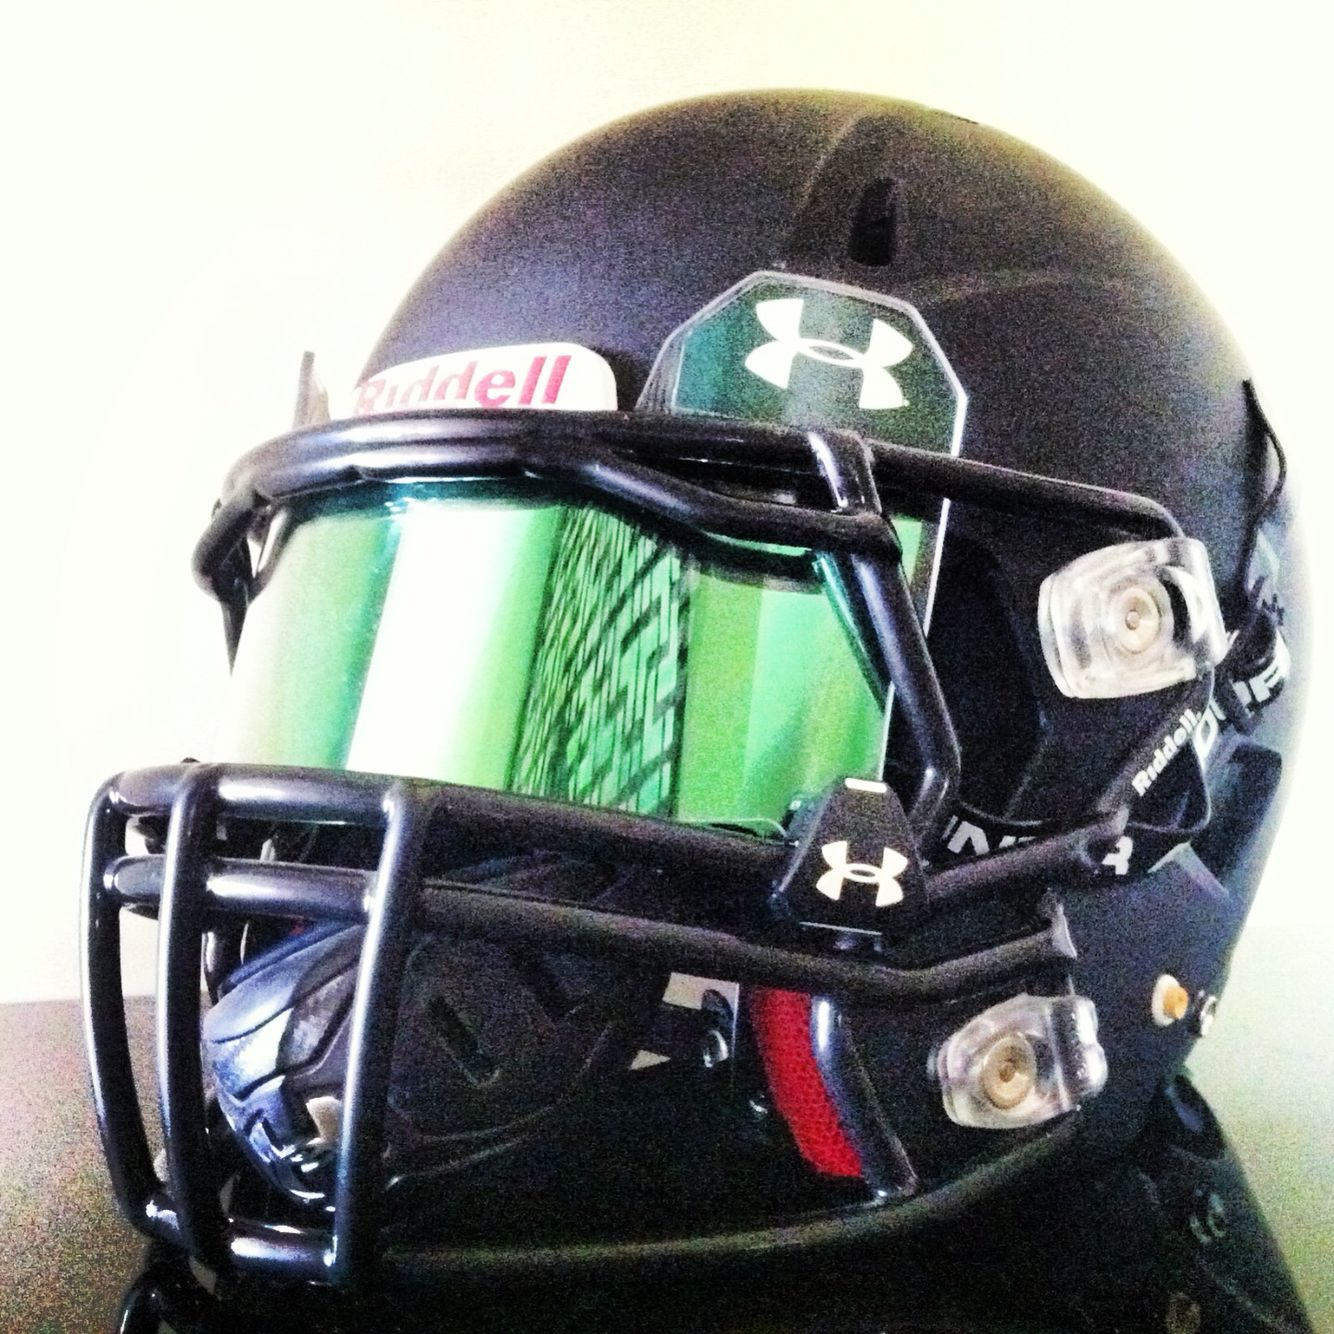 Shoc Green Insert In An Under Armour Visor Installed Into A